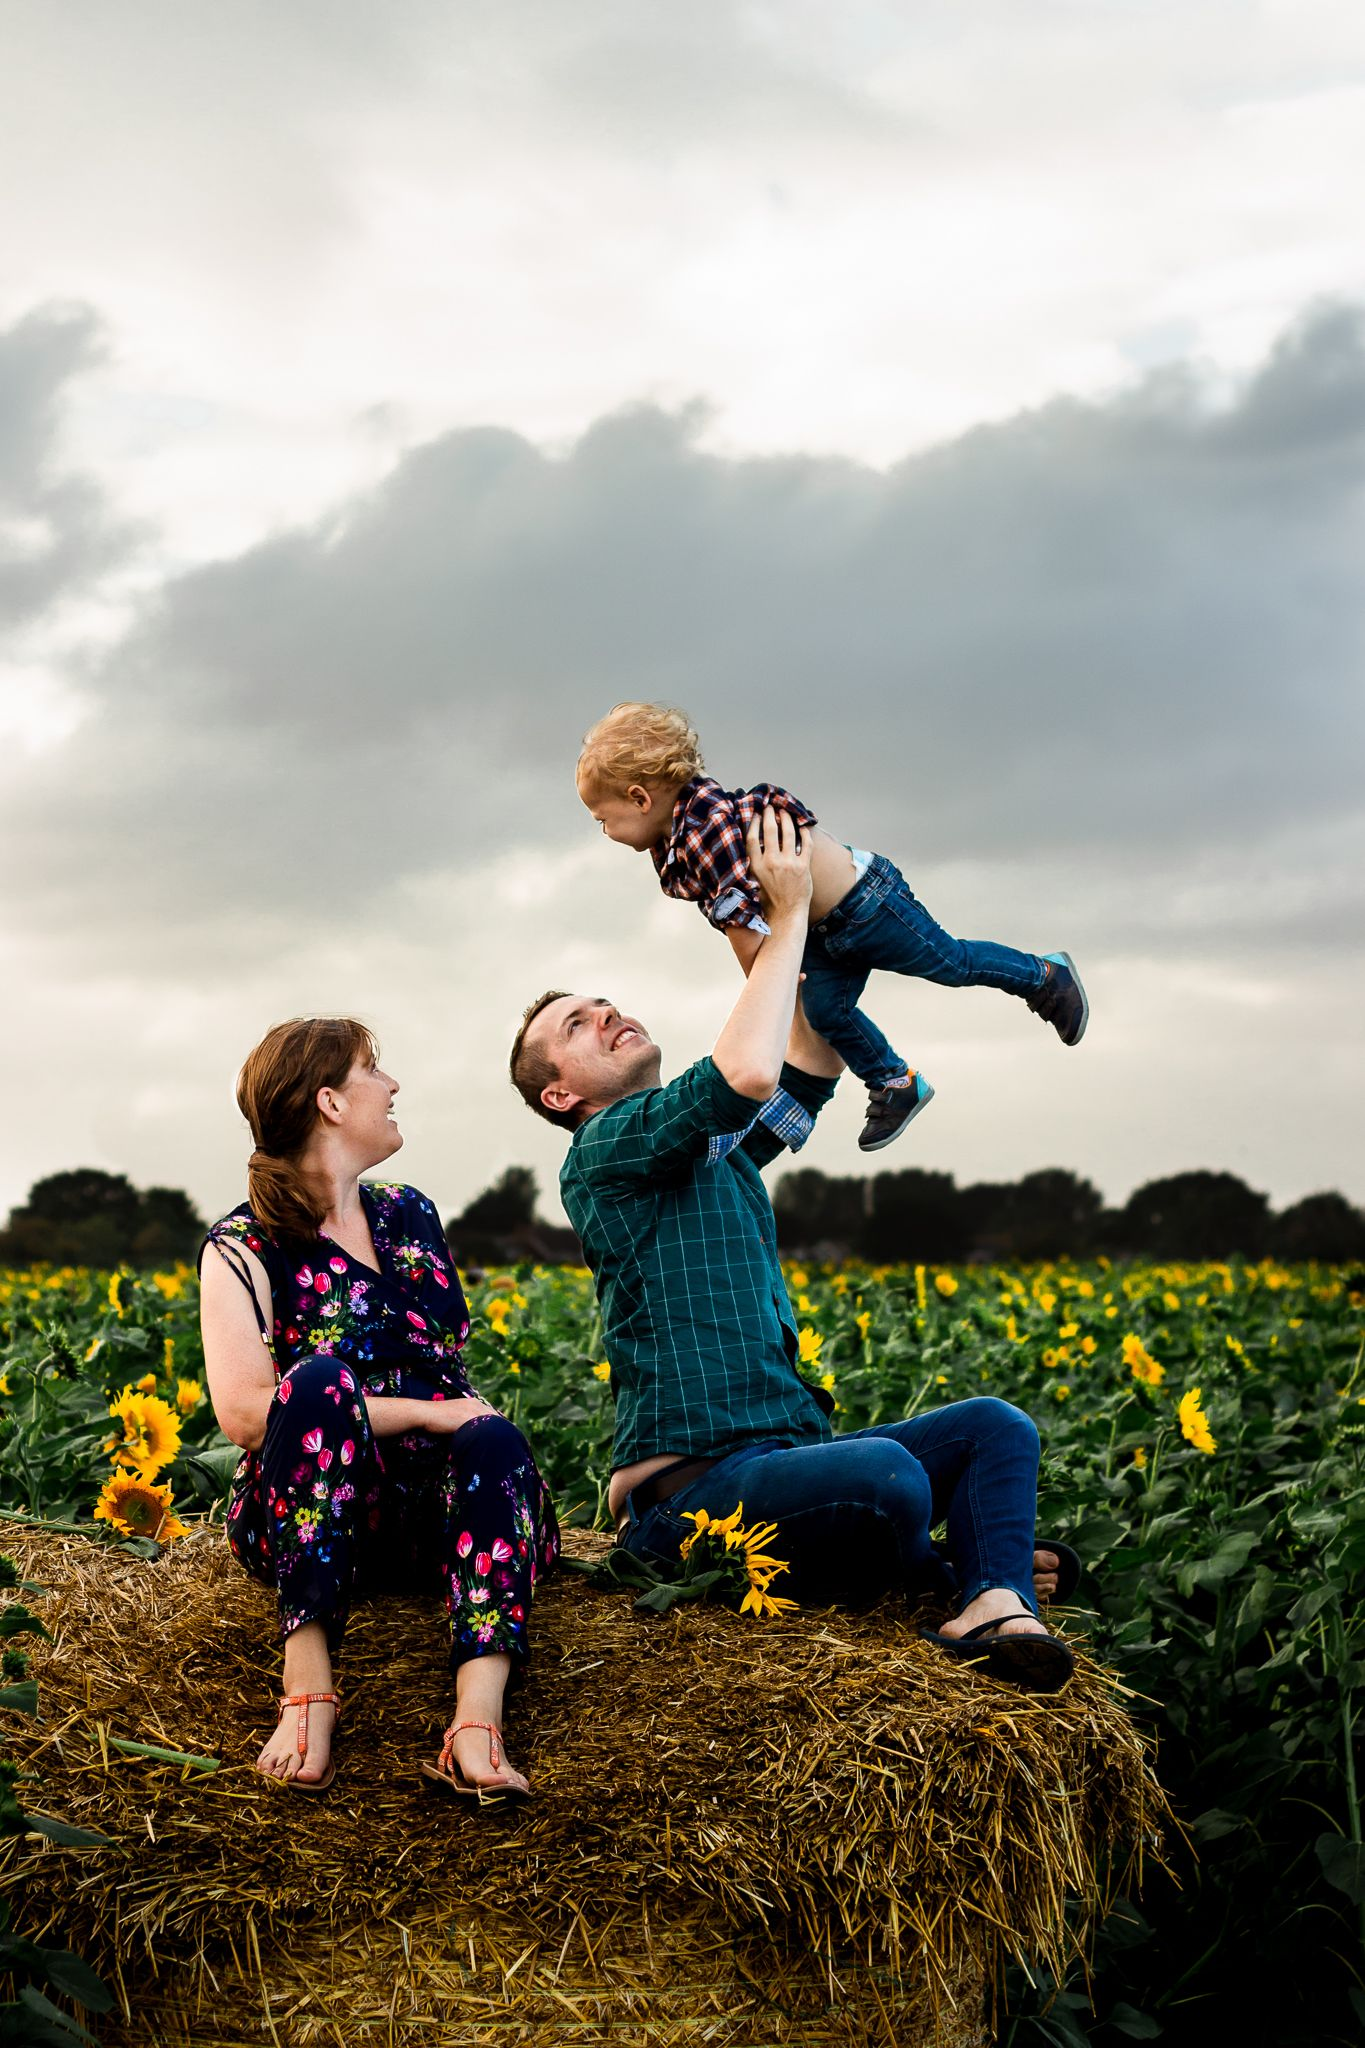 In a Sunflower field on Hayling Island a family sit on a haybale while Dad airplanes his Son into the overcast sky.